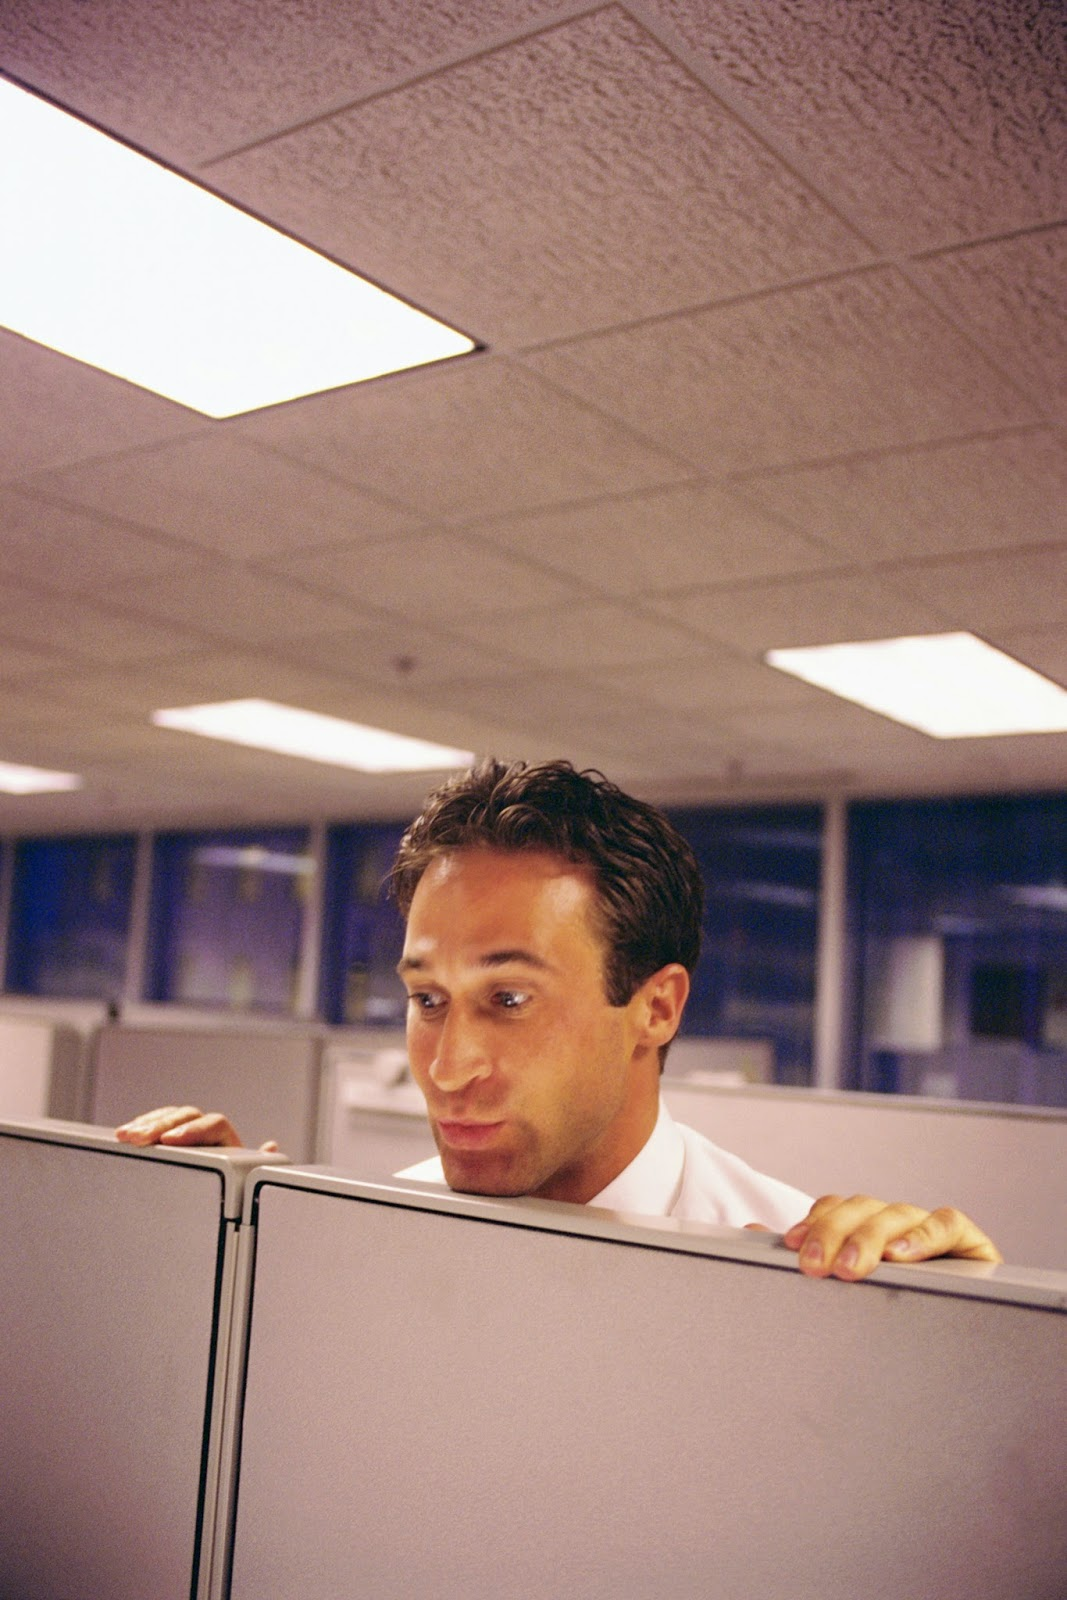 Man peering over cubicle wall